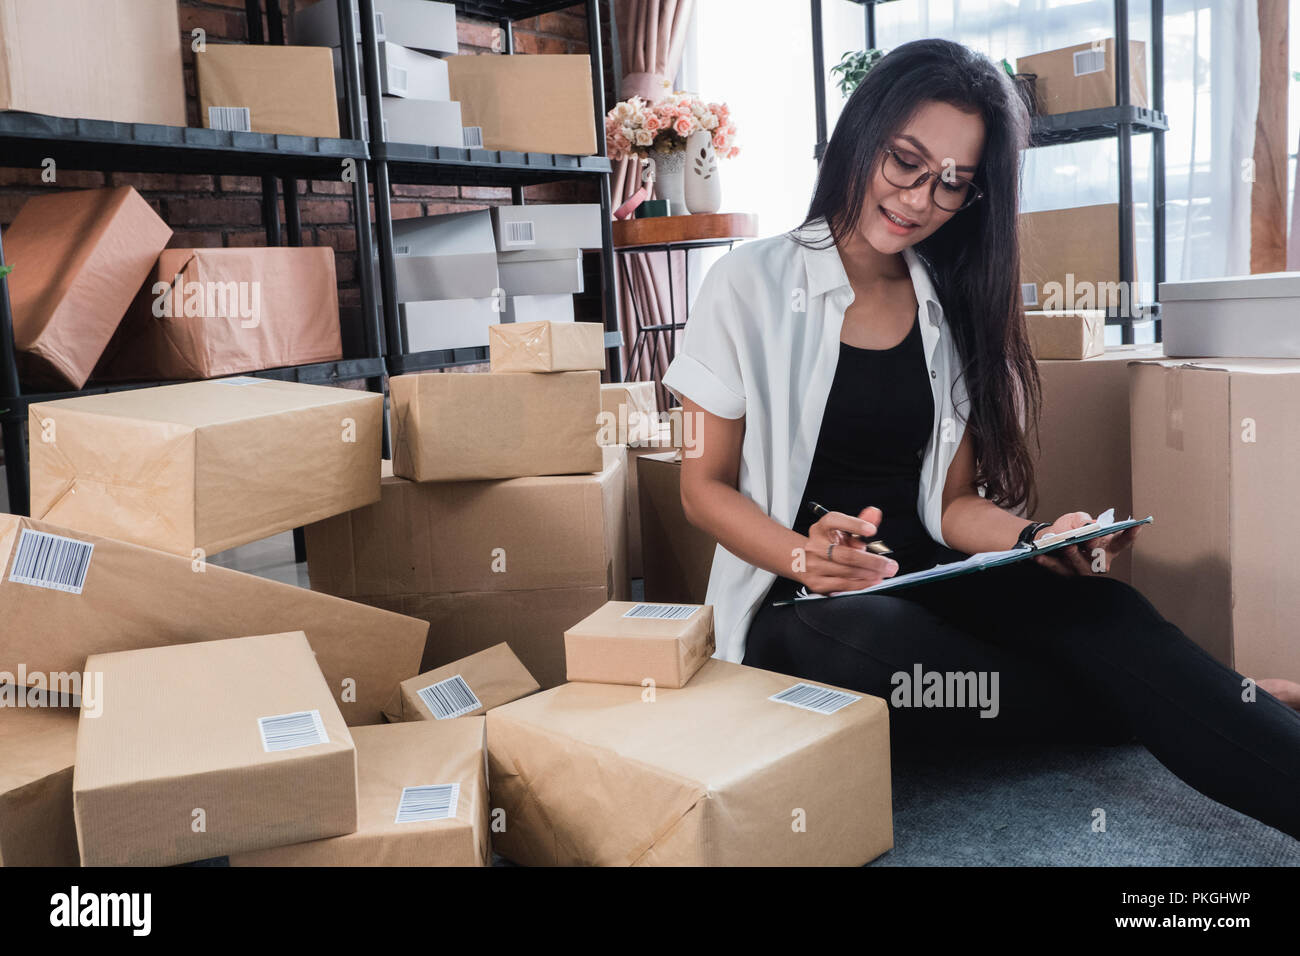 working at home and check shipping packages - Stock Image